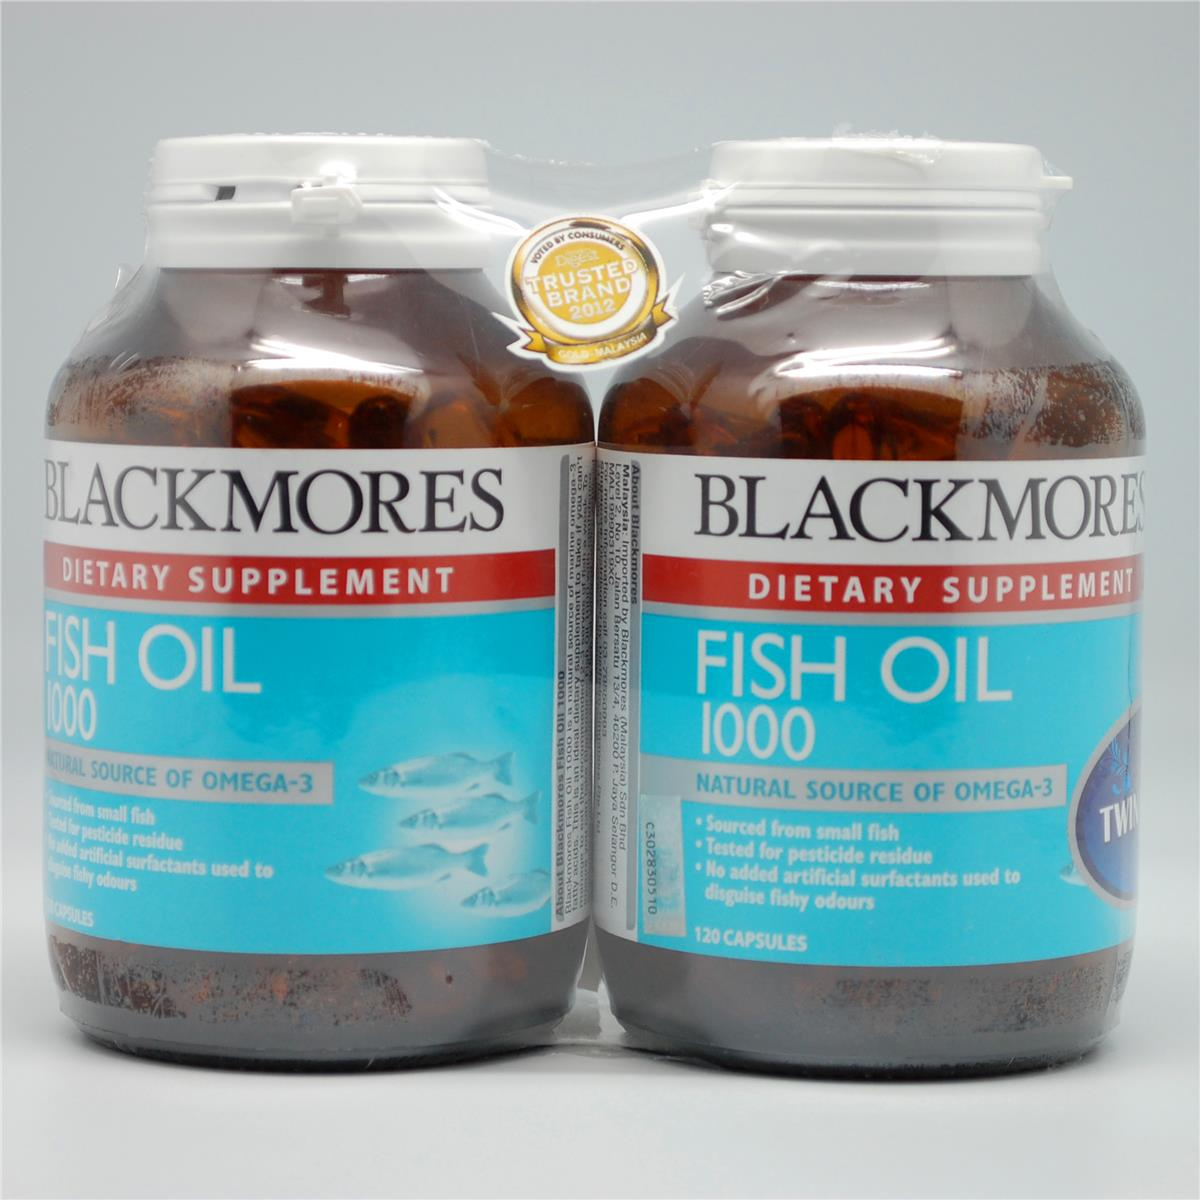 Blackmores fish oil 1000mg 120 end 5 8 2017 1 15 pm myt for Fish oil 1000mg